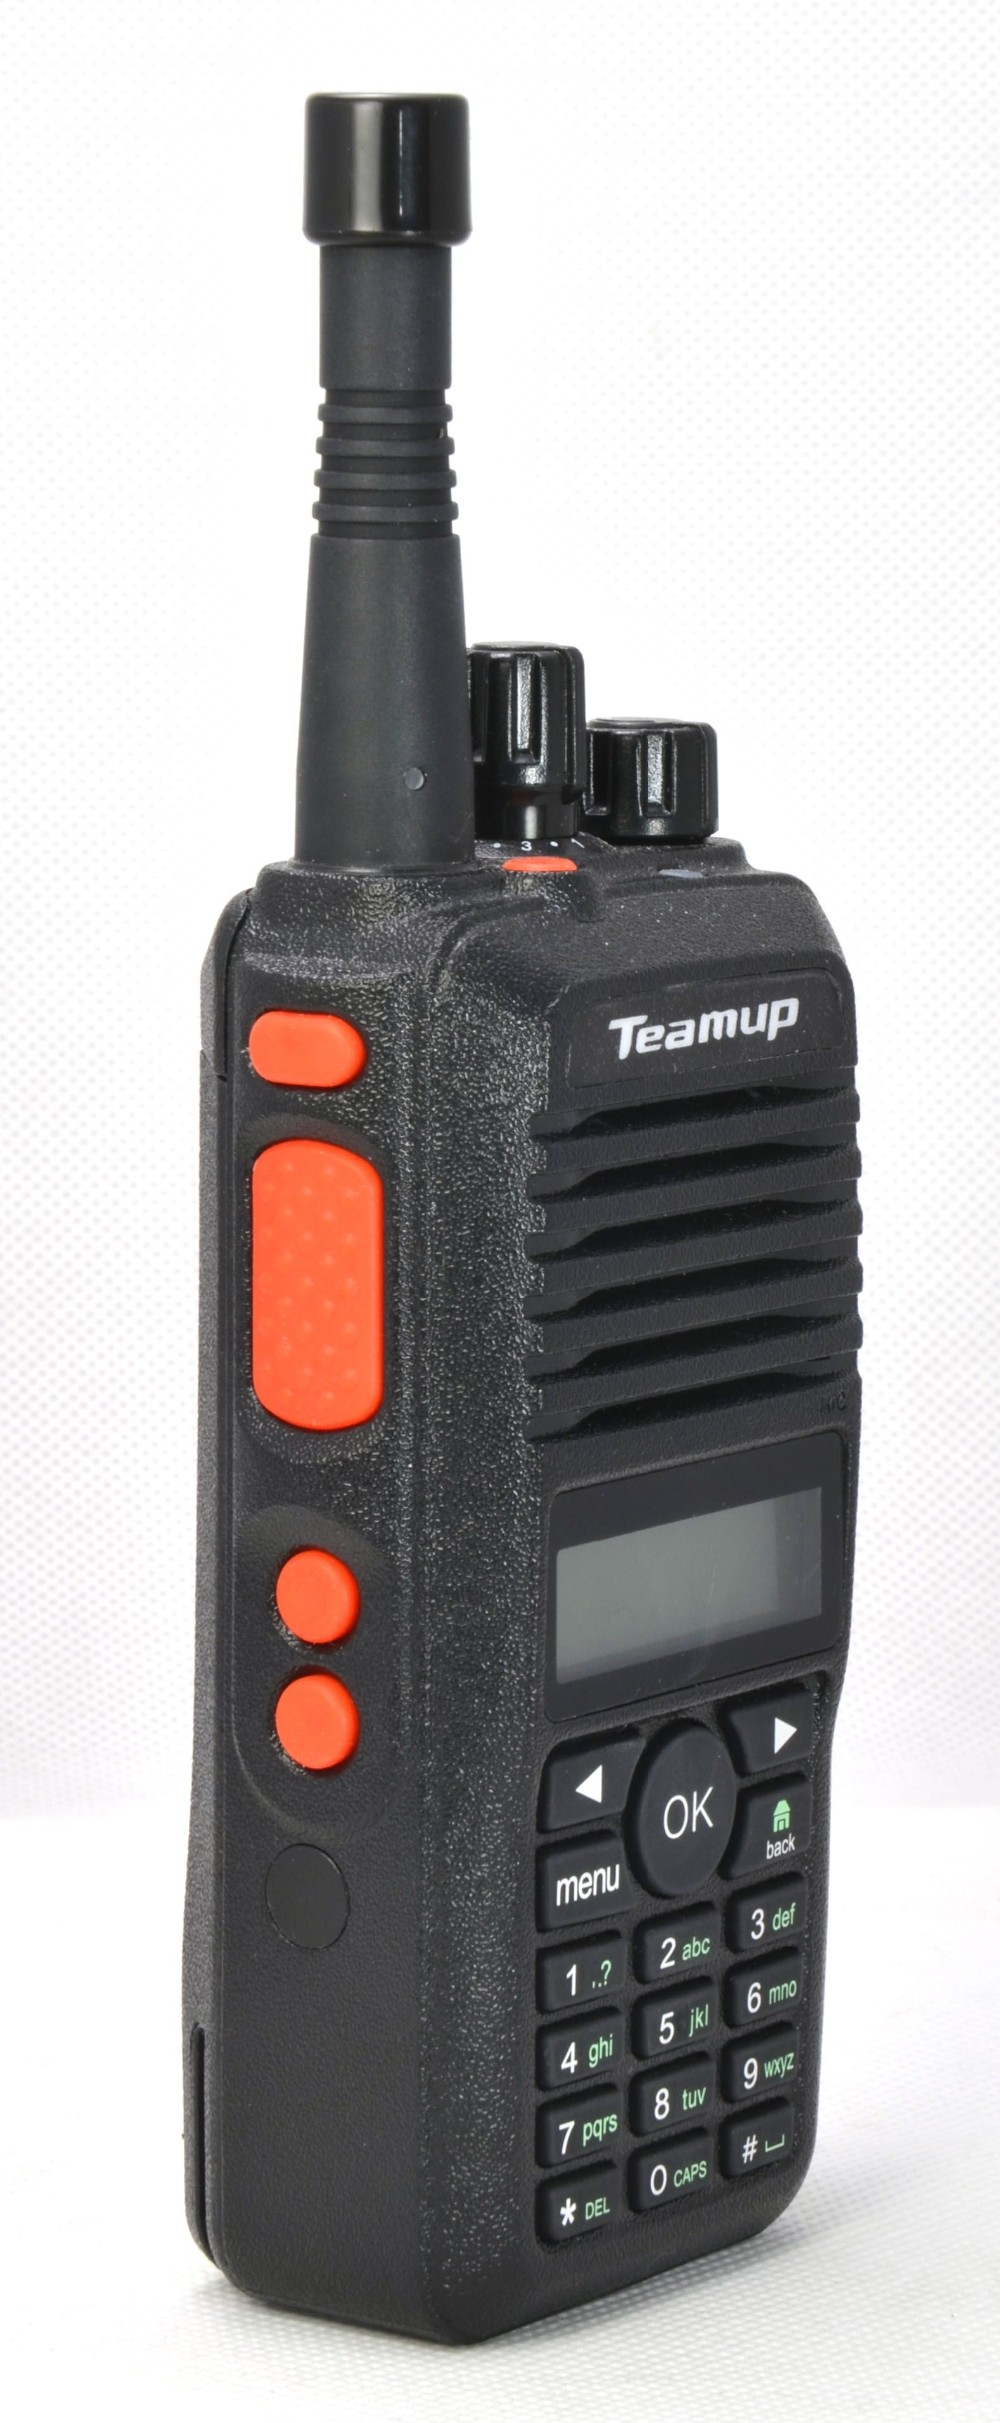 Hot popular best handheld 2G /3G/ GSM walkie talkie with sim card ,Teamup radio HJ780